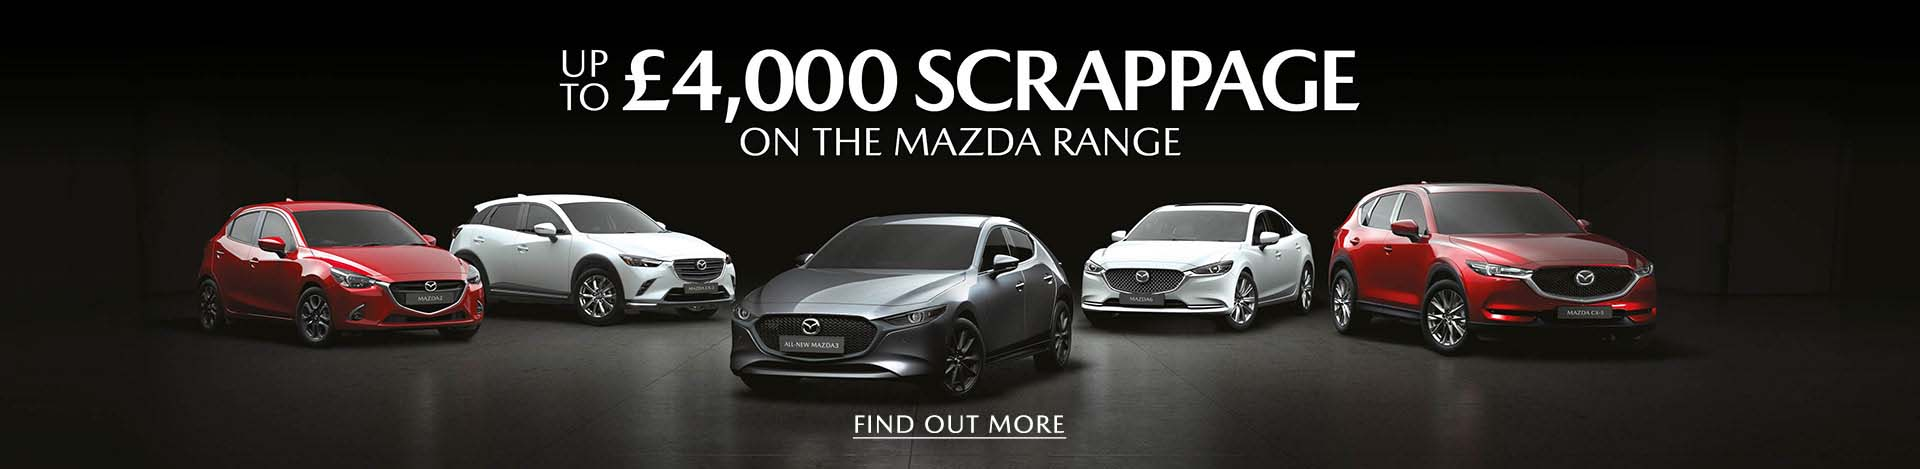 Mazda Scrappage Scheme 2020 with £4,000 allowance